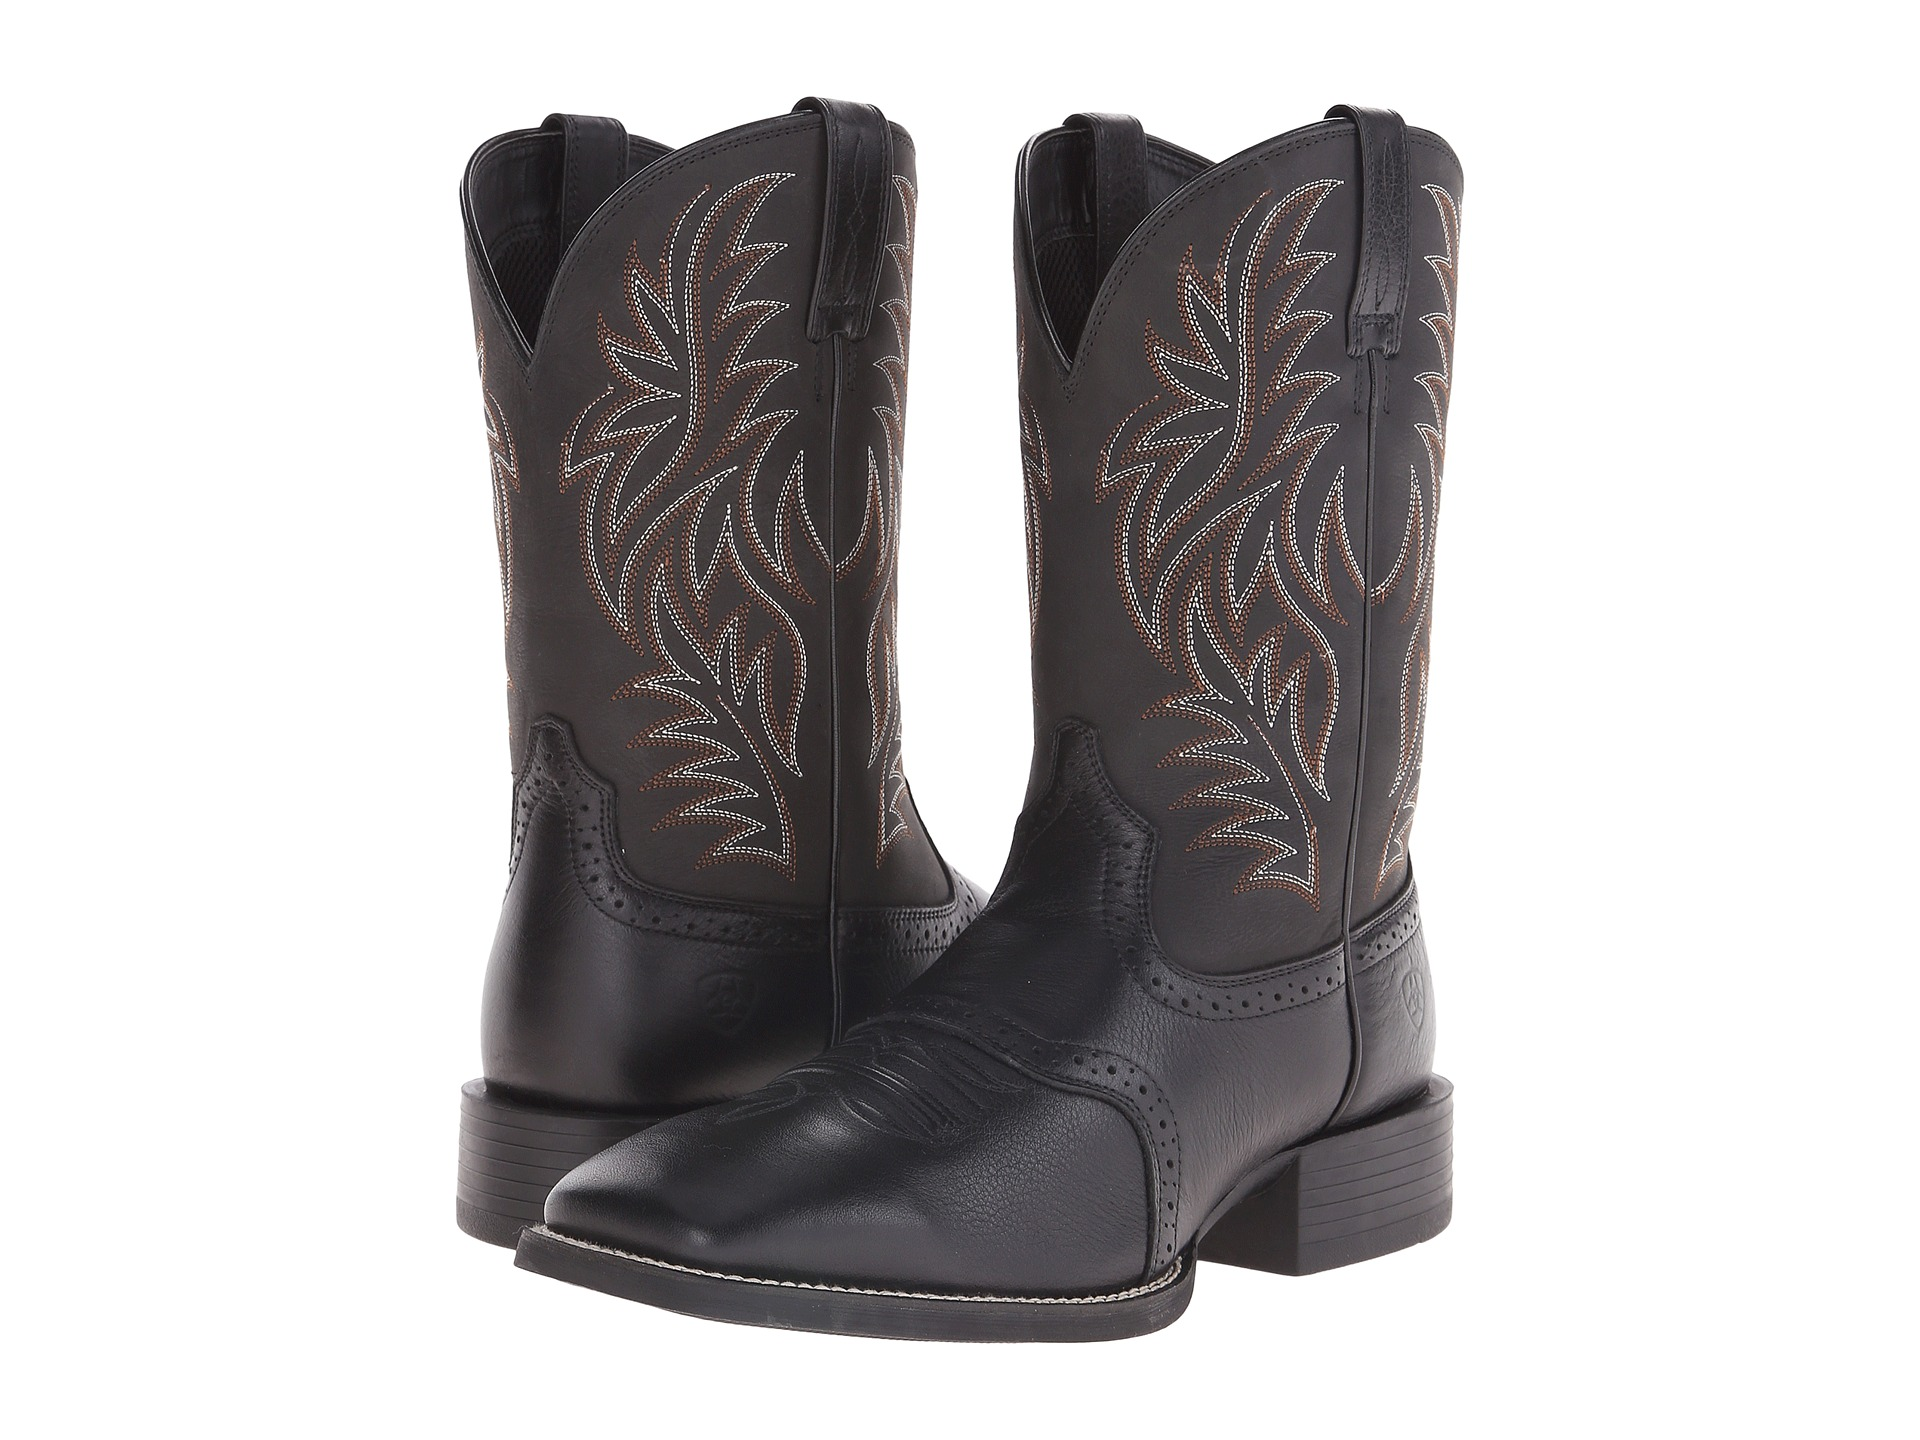 Ariat Sport Western Wide Square Toe at Zappos.com